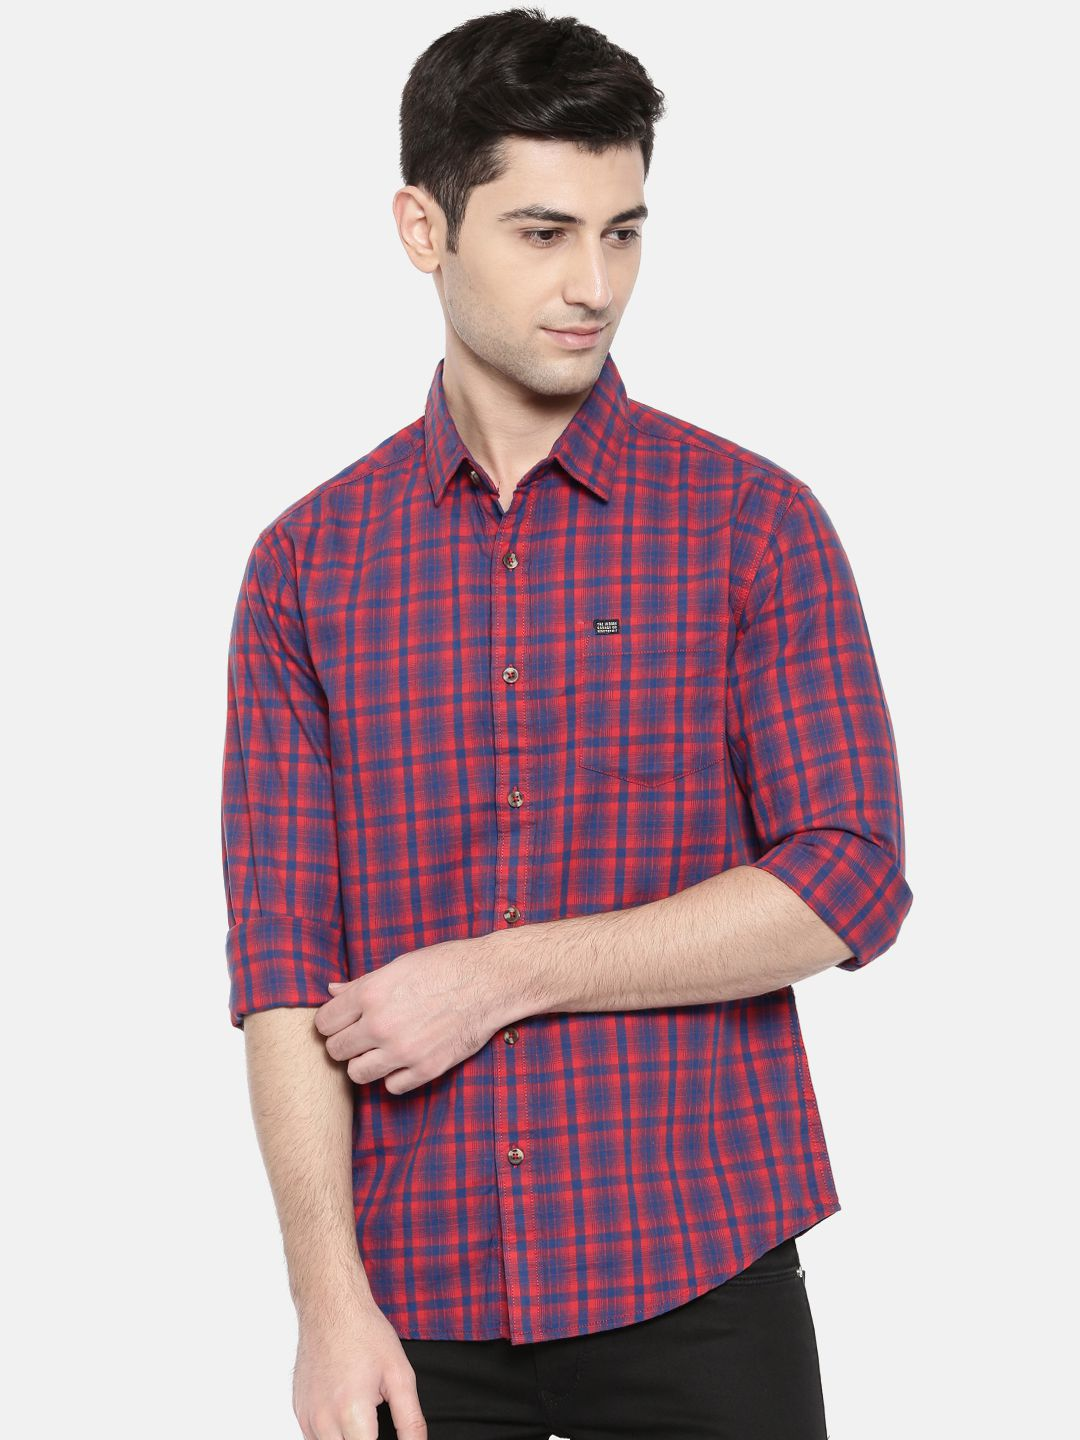 The Indian Garage Co. 100 Percent Cotton Shirt